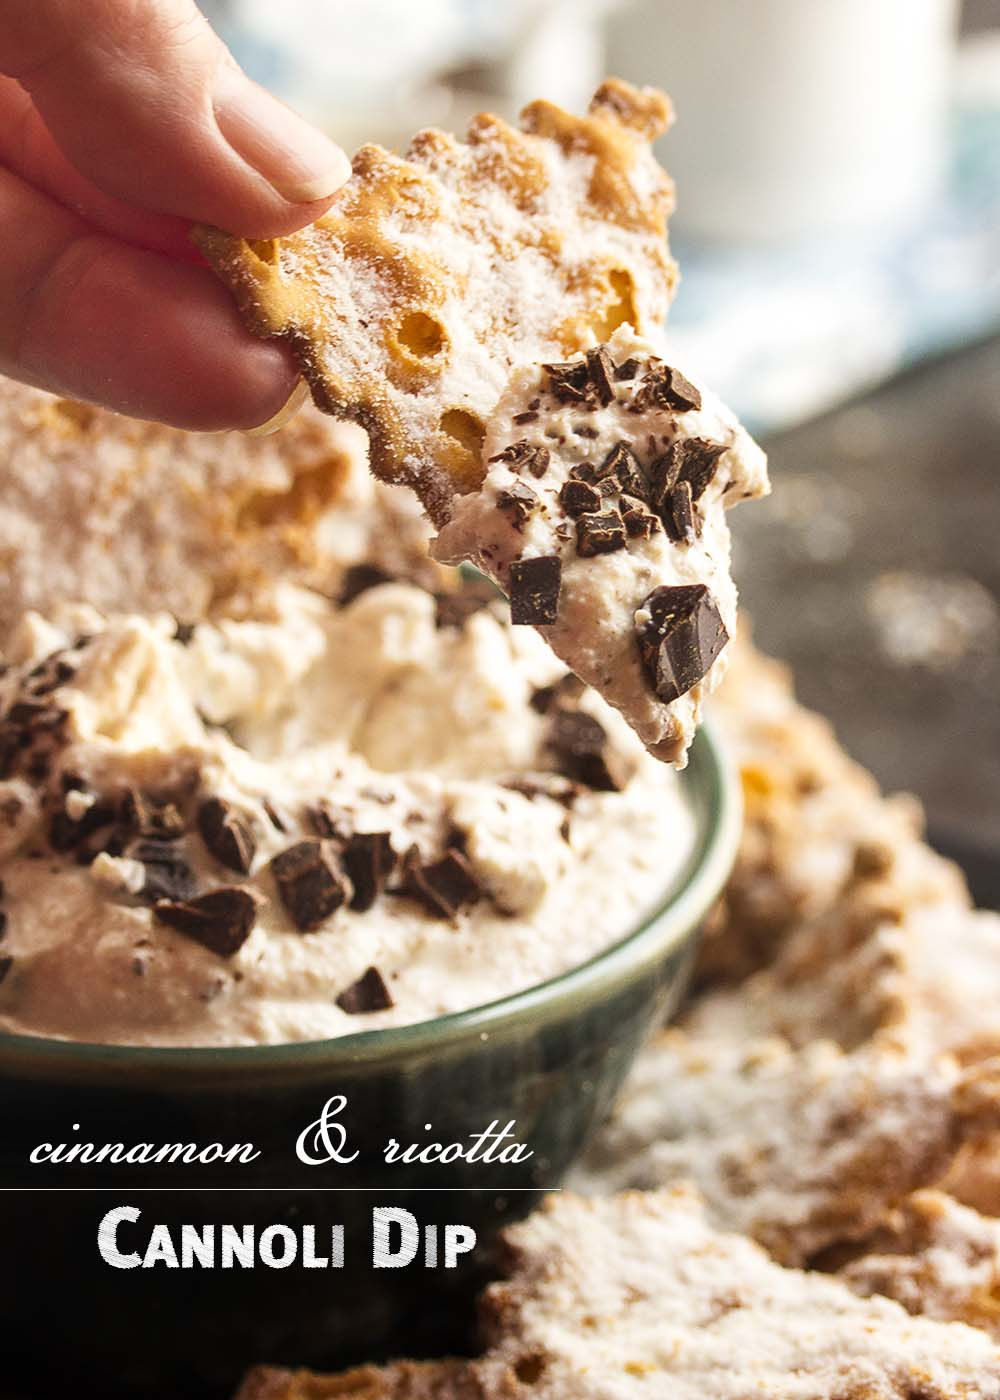 This easy to make ricotta cannoli dip is full of cinnamon and fresh ricotta and topped with chopped chocolate. Perfect for a party! All the yumminess of cannolis without the fuss and bother of making and filling cannoli shells. | justalittlebitofbacon.com